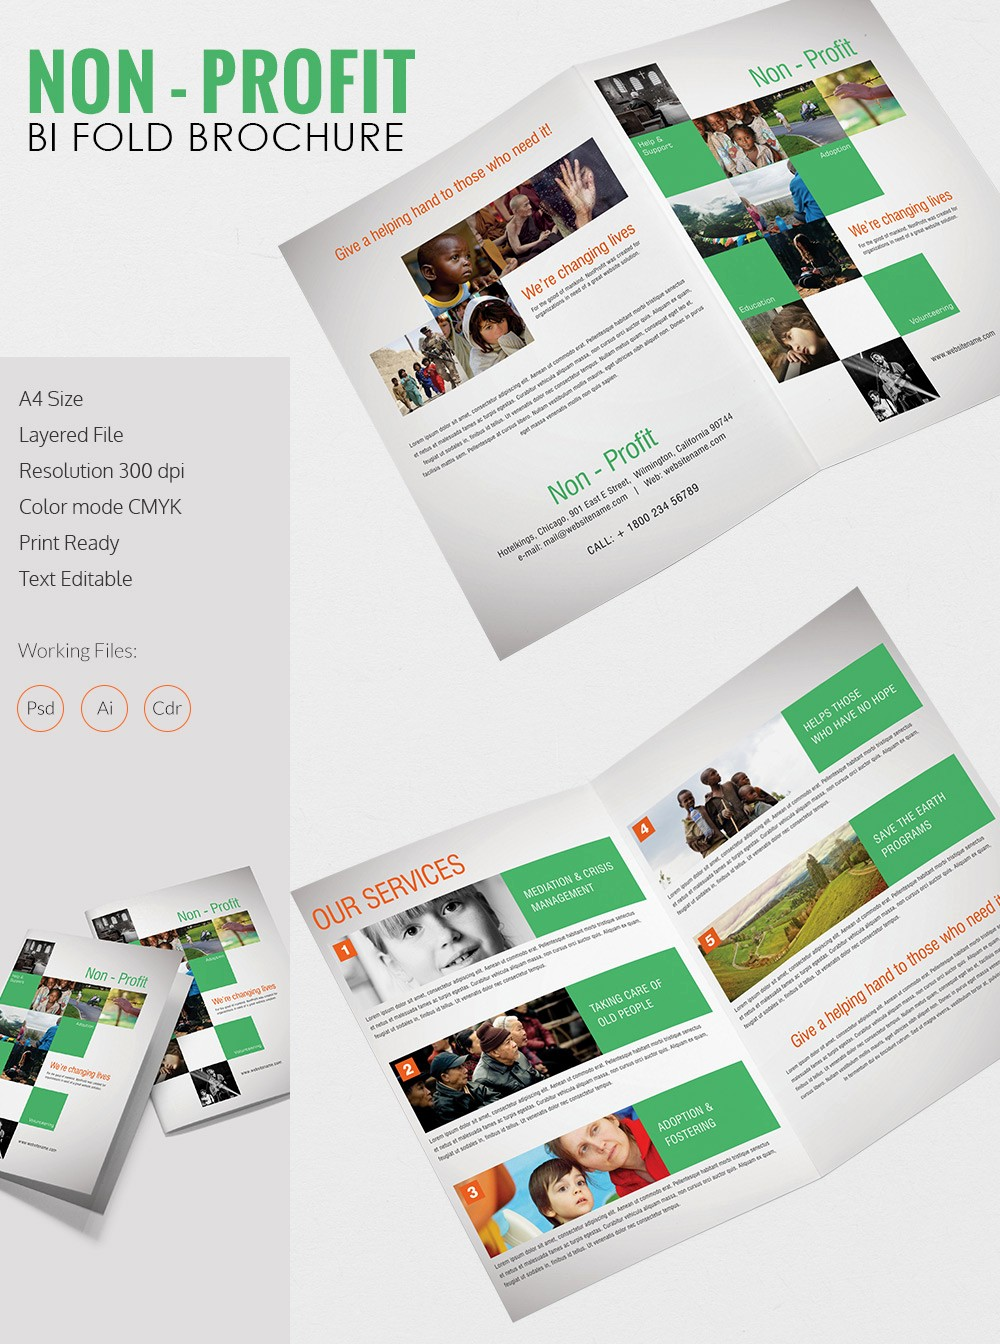 Bi Fold Brochure Templates Free New Printable Bi Fold Brochure Template – 67 Free Word Psd